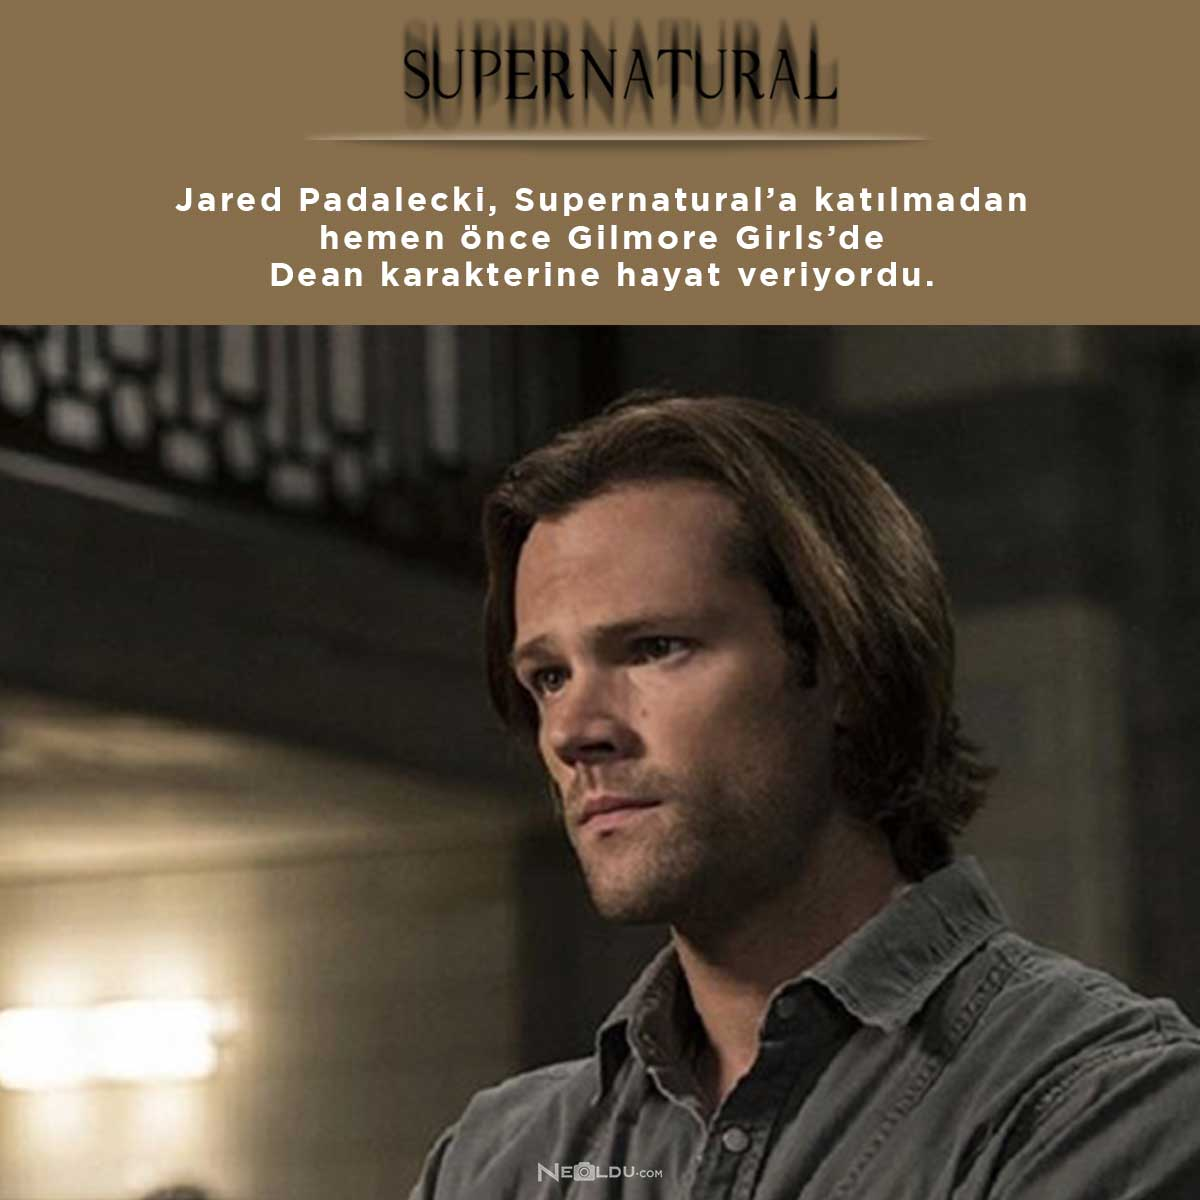 jared-padalecki,-supernatural.jpg